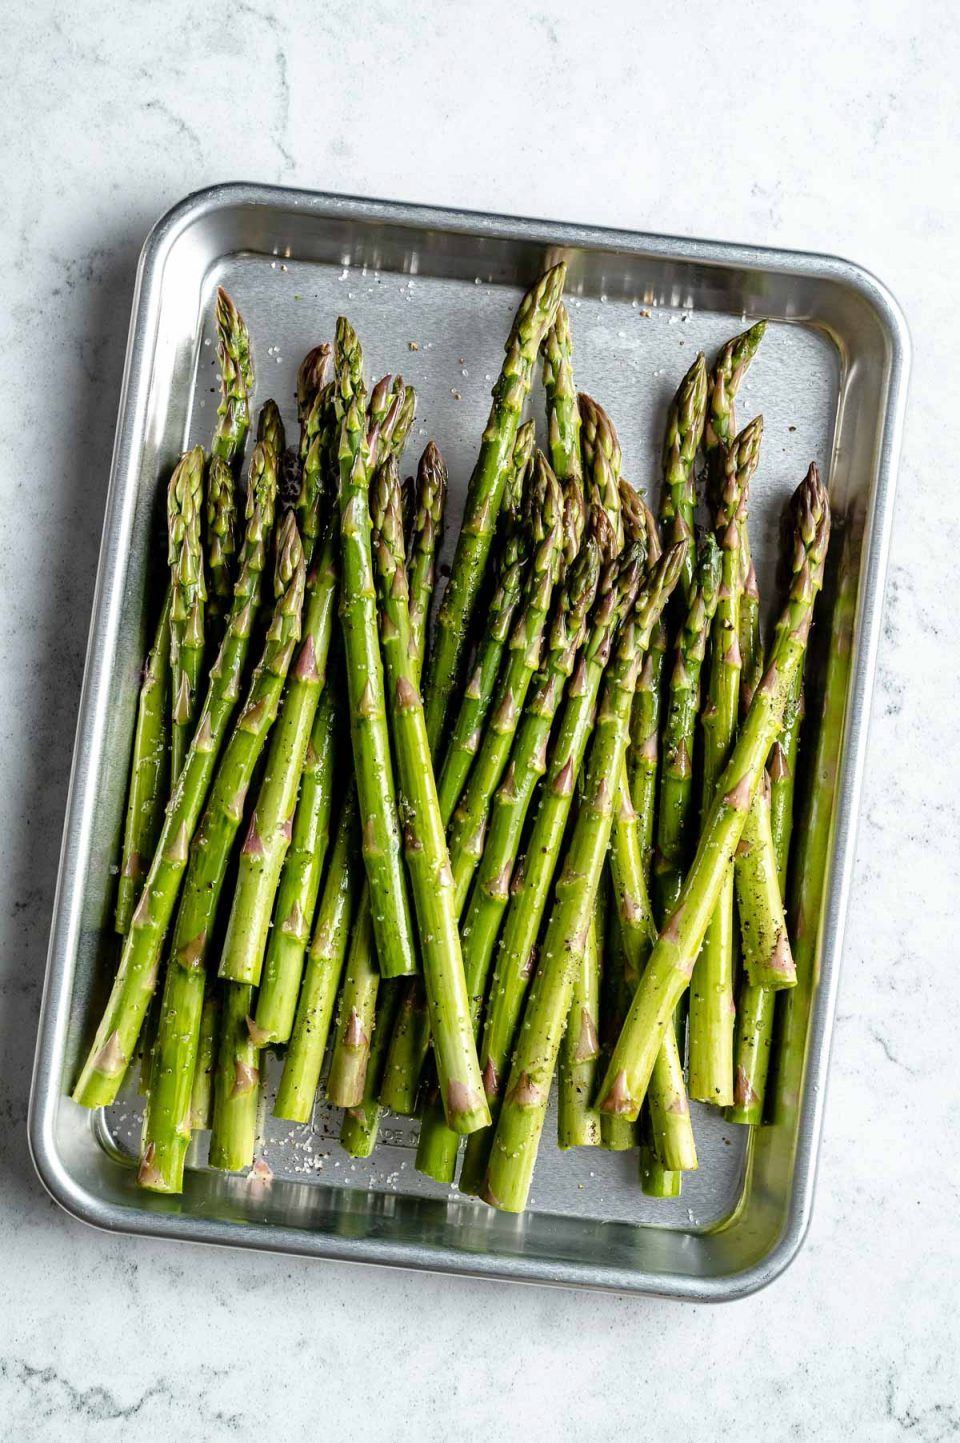 Fresh & raw asparagus spears seasoned with avocado oil, kosher salt, & ground black pepper arranged on an aluminum baking sheet. The baking sheet sits on top of a white & gray marble surface.